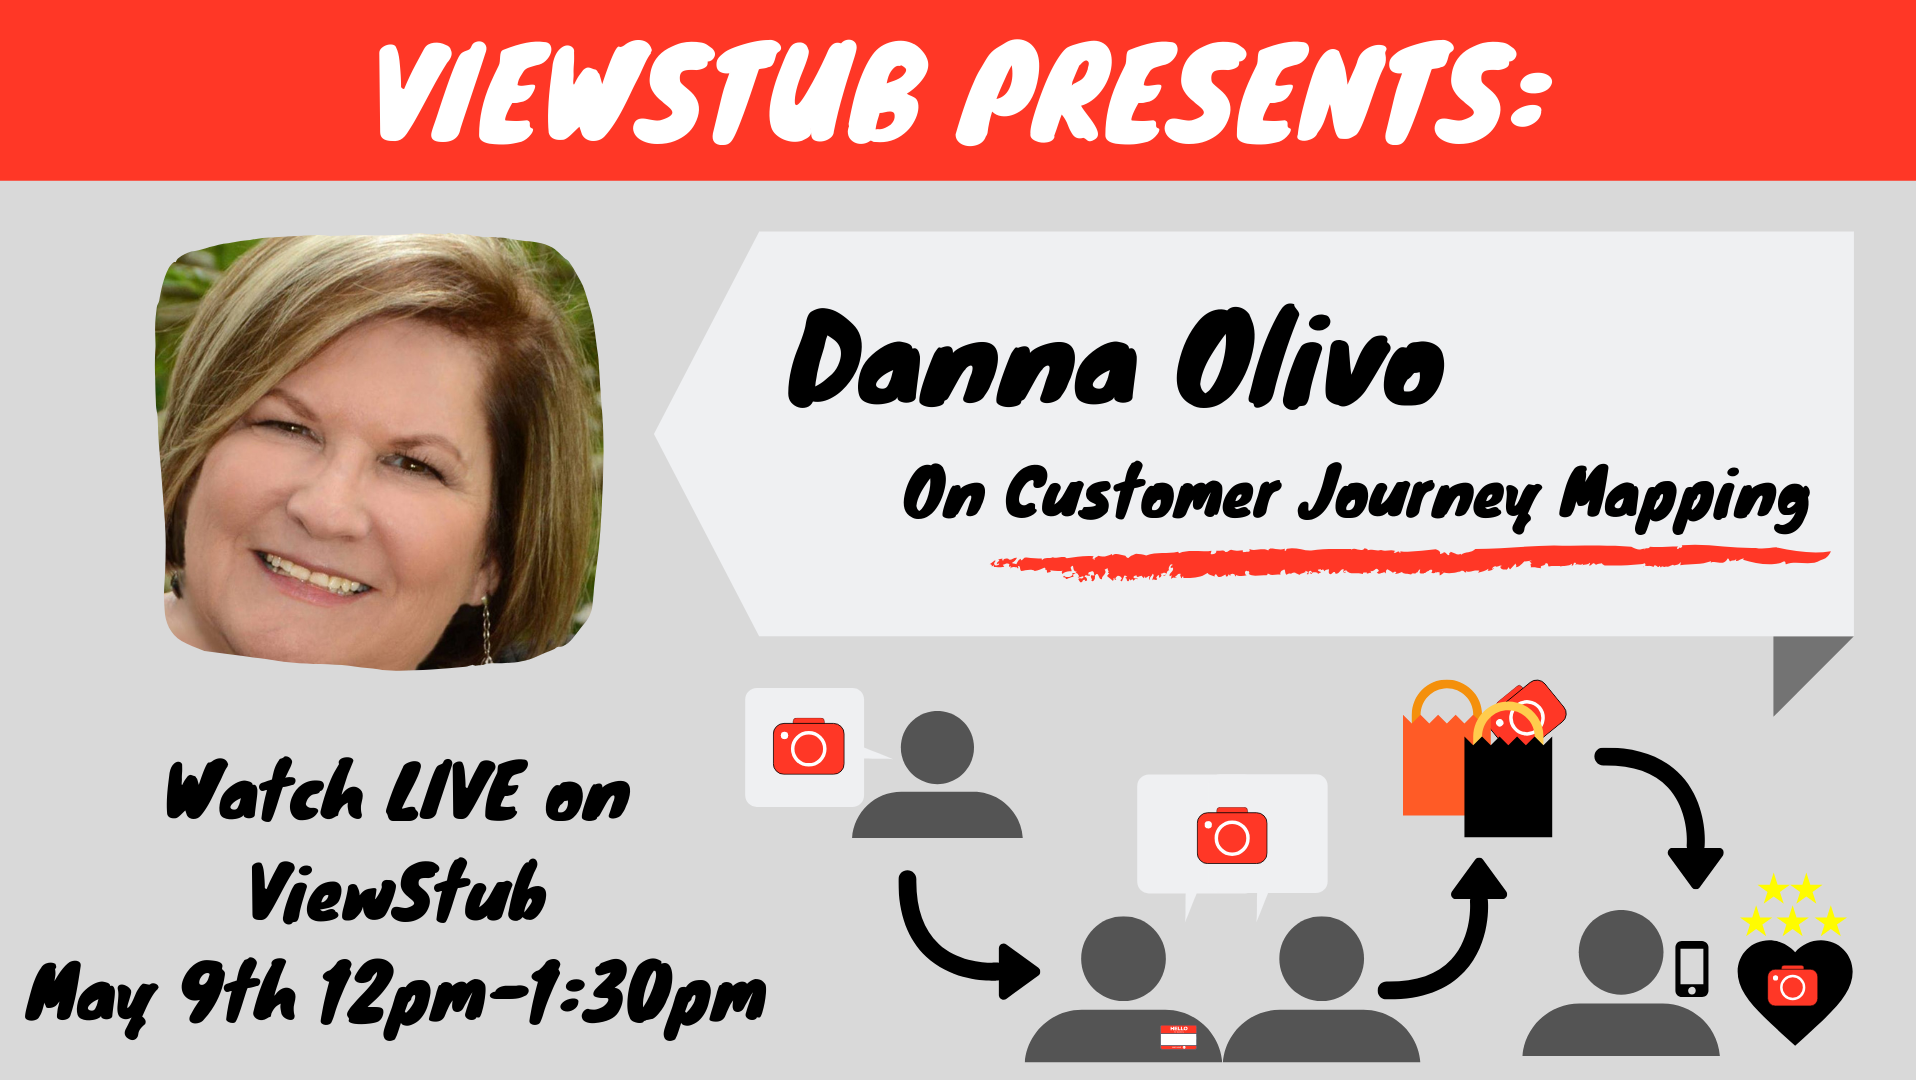 Photo for ViewStub Presents Danna Olivo on Customer Journey Mapping on ViewStub